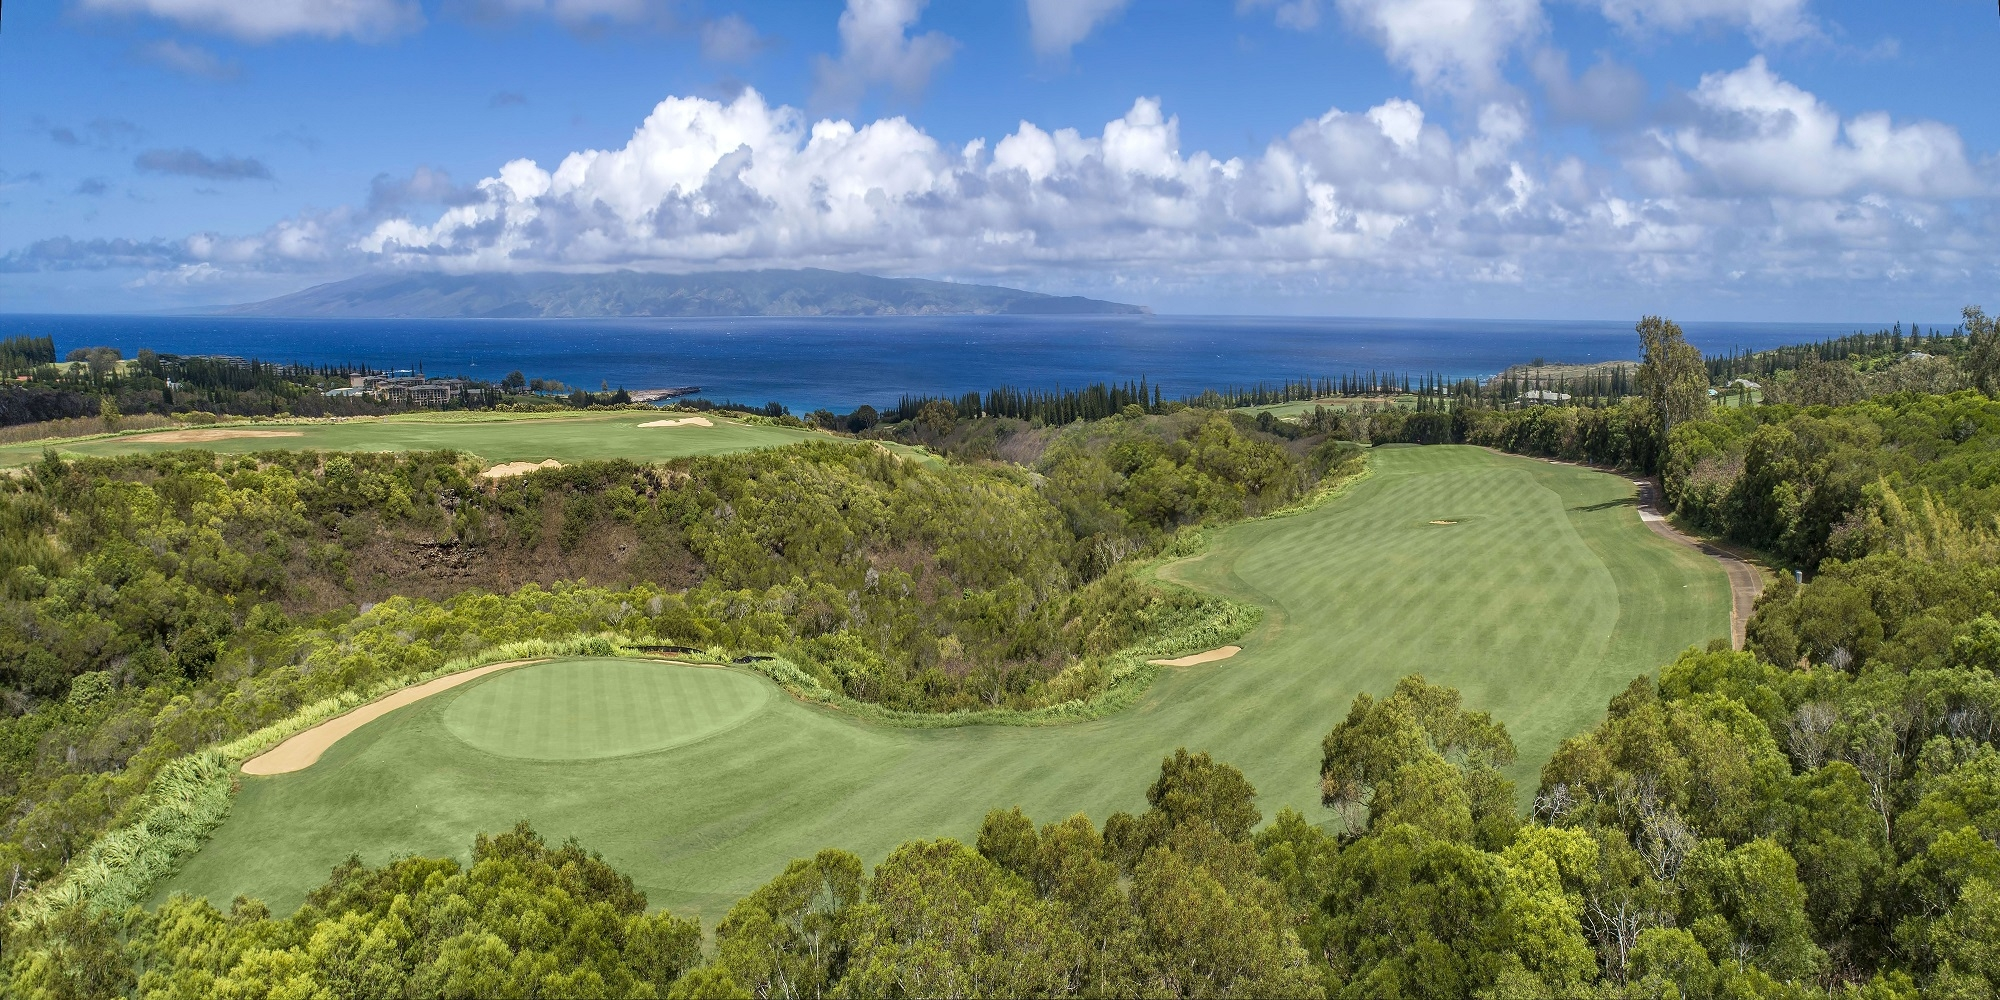 KAPALUA GOLF'S PLANTATION COURSE TO REOPEN NOVEMBER 23rd FOLLOWING 9-MONTH REFINEMENT PROJECT